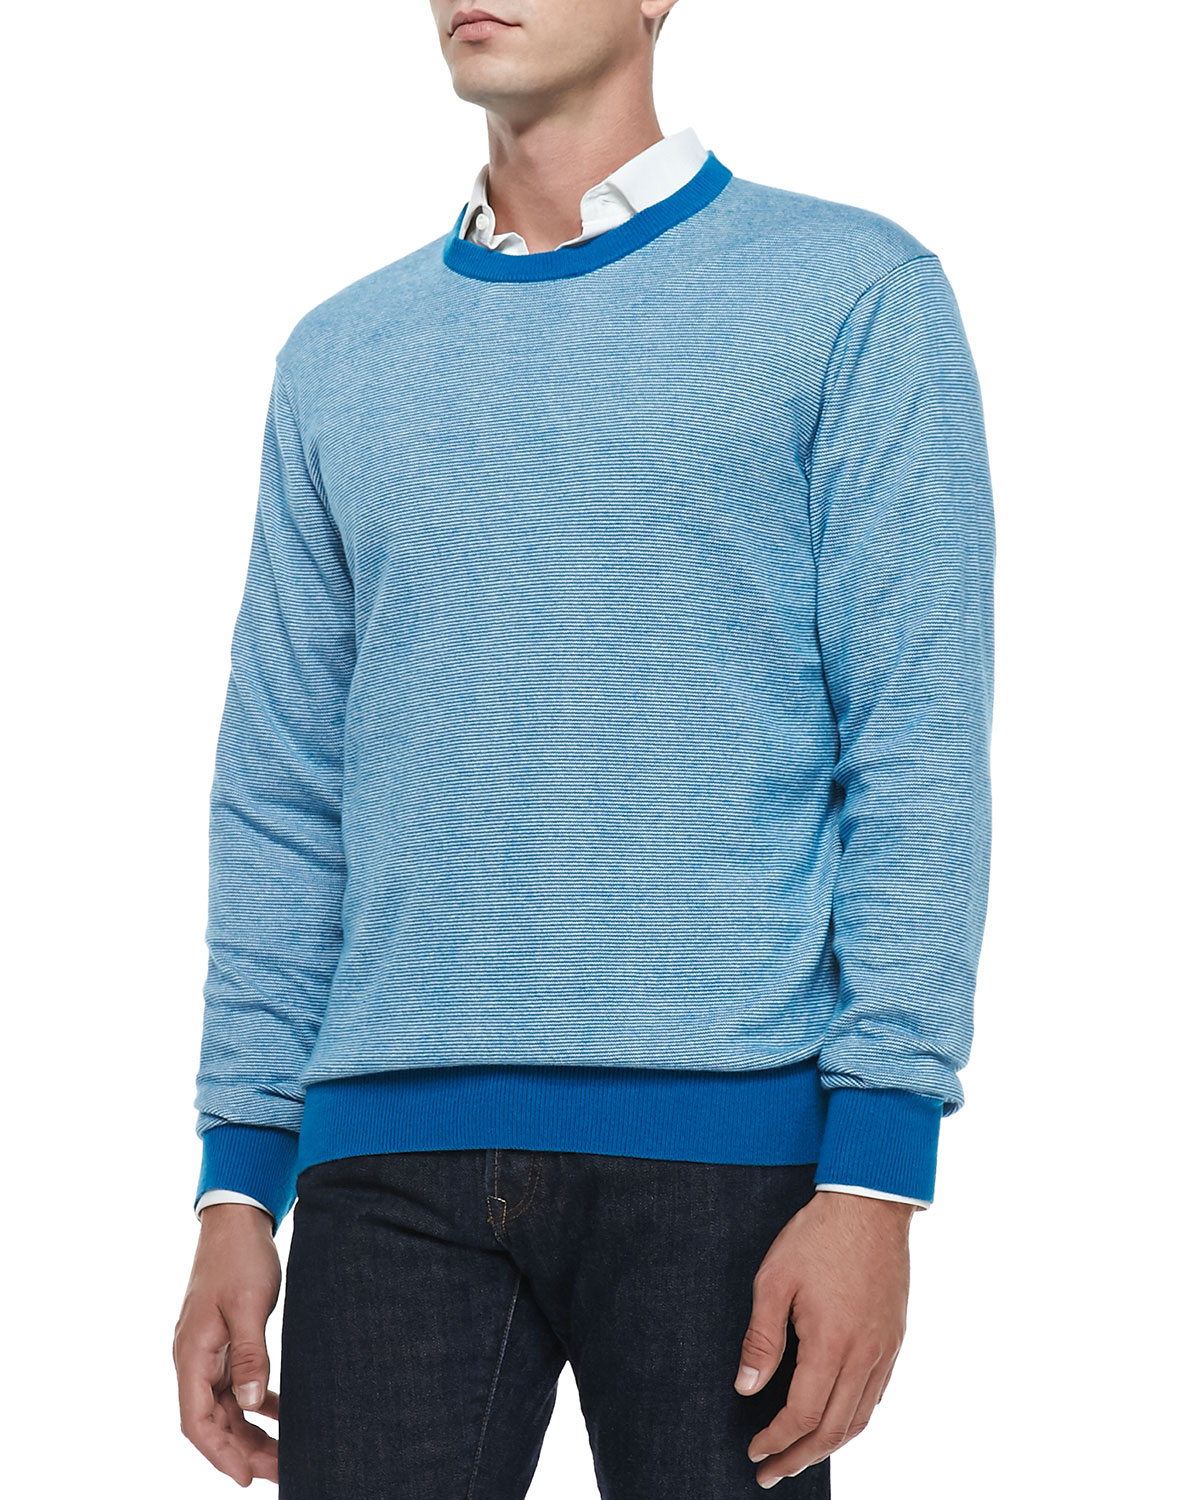 Neiman marcus Cotton/cashmere Striped Sweater in Blue for Men   Lyst